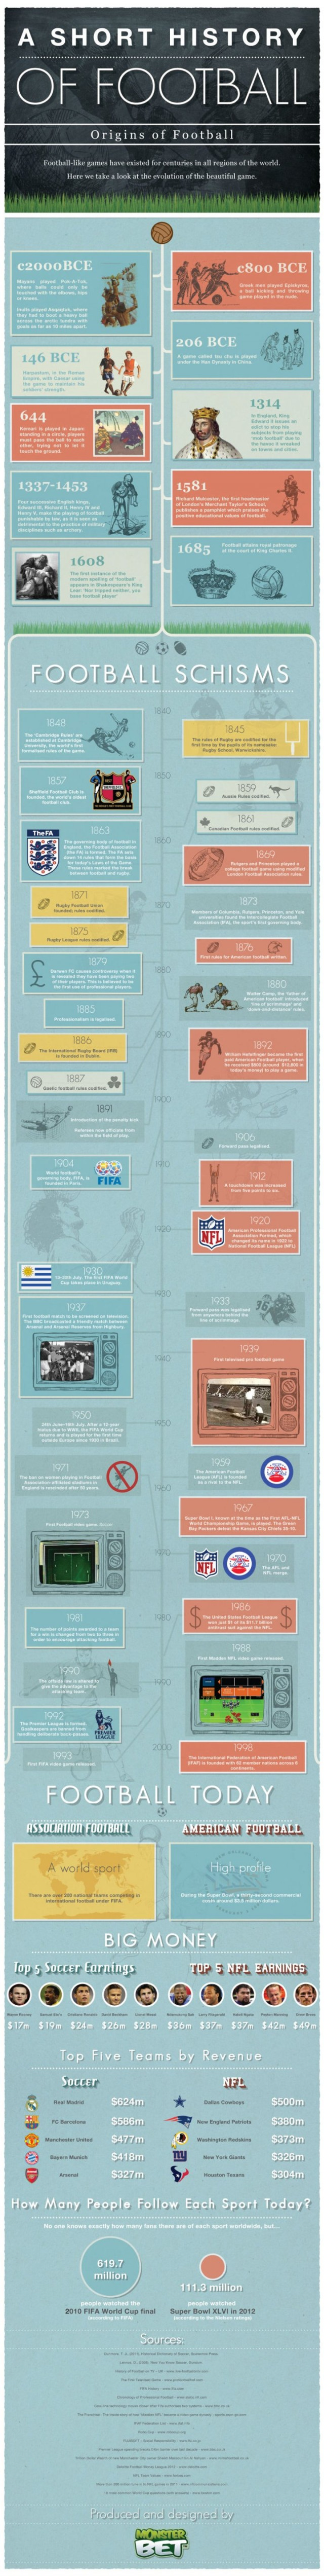 History of Football- infographic